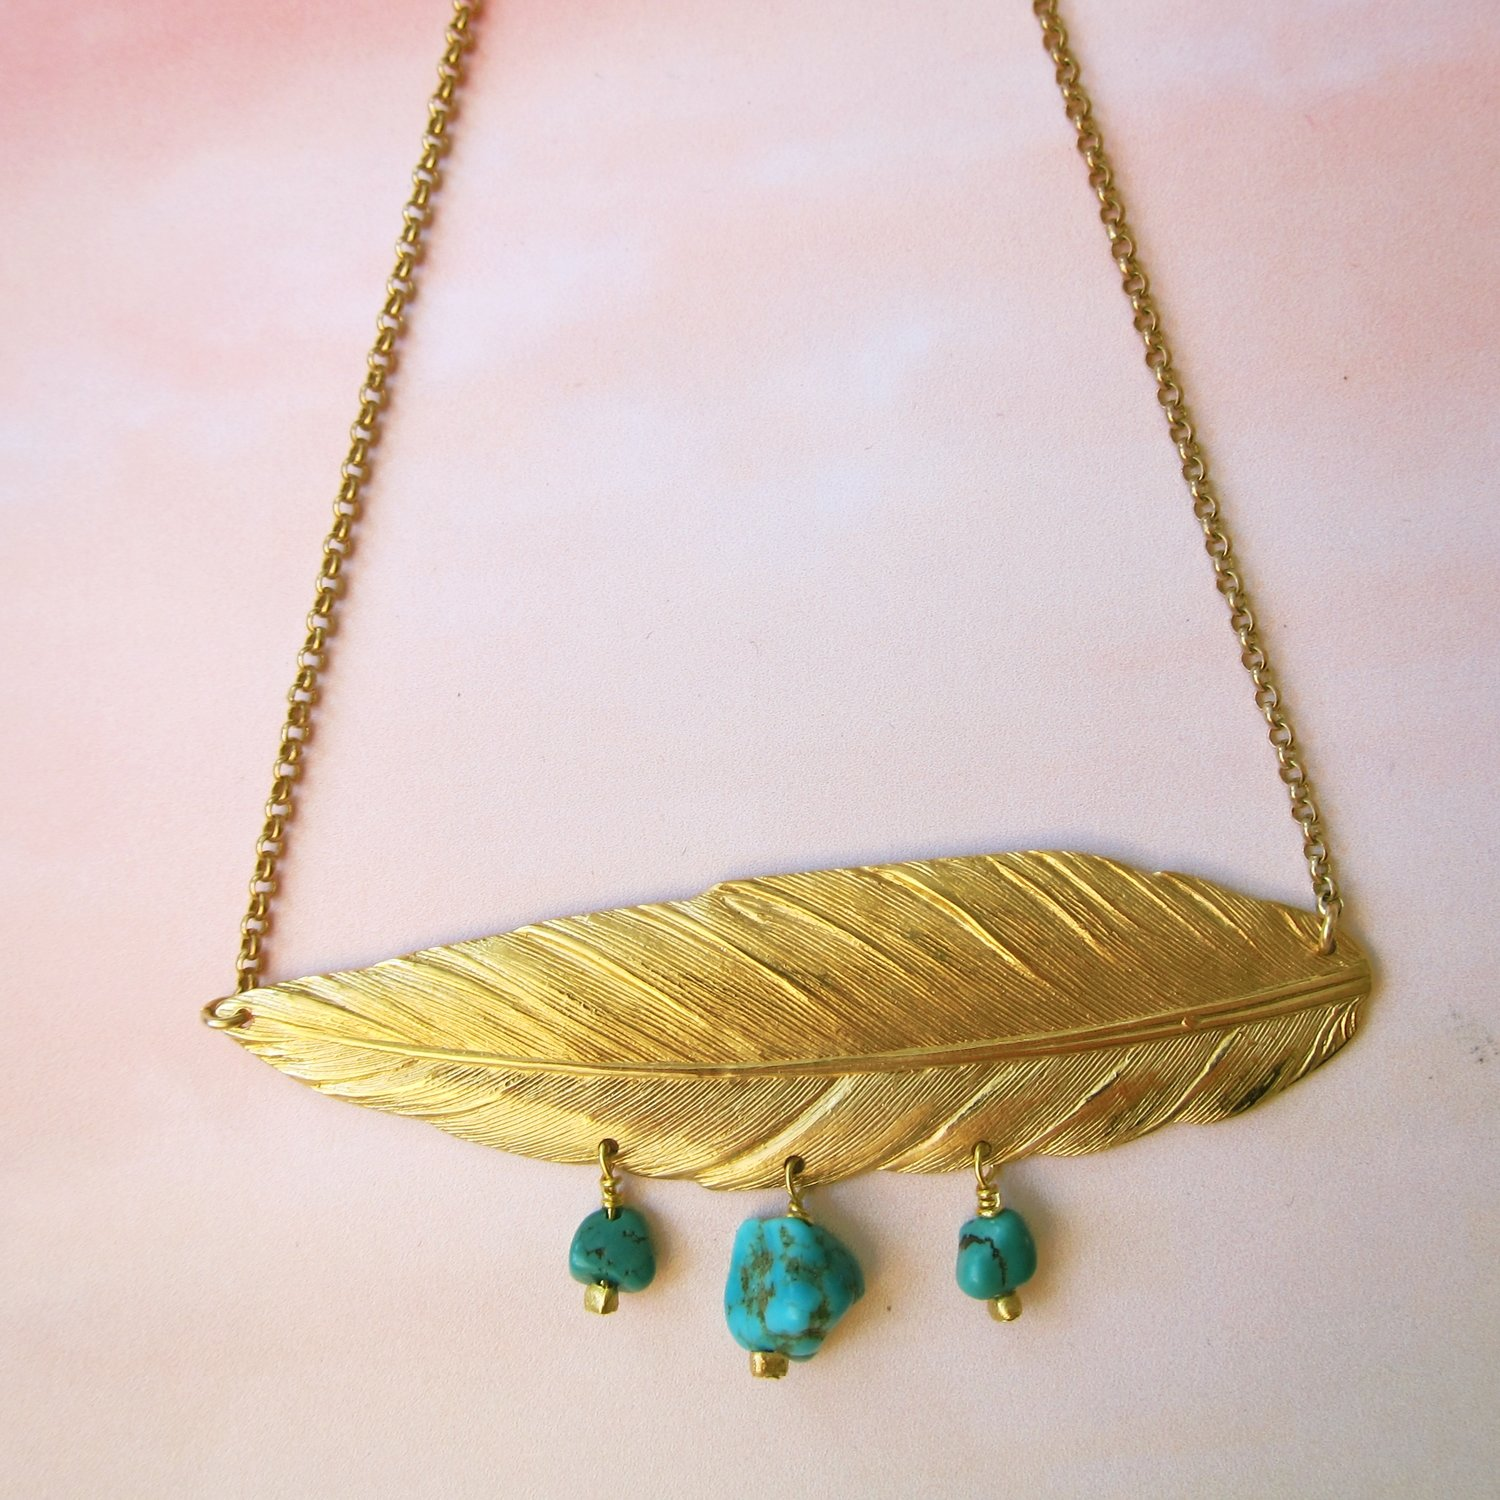 Collier Plume et turquoise